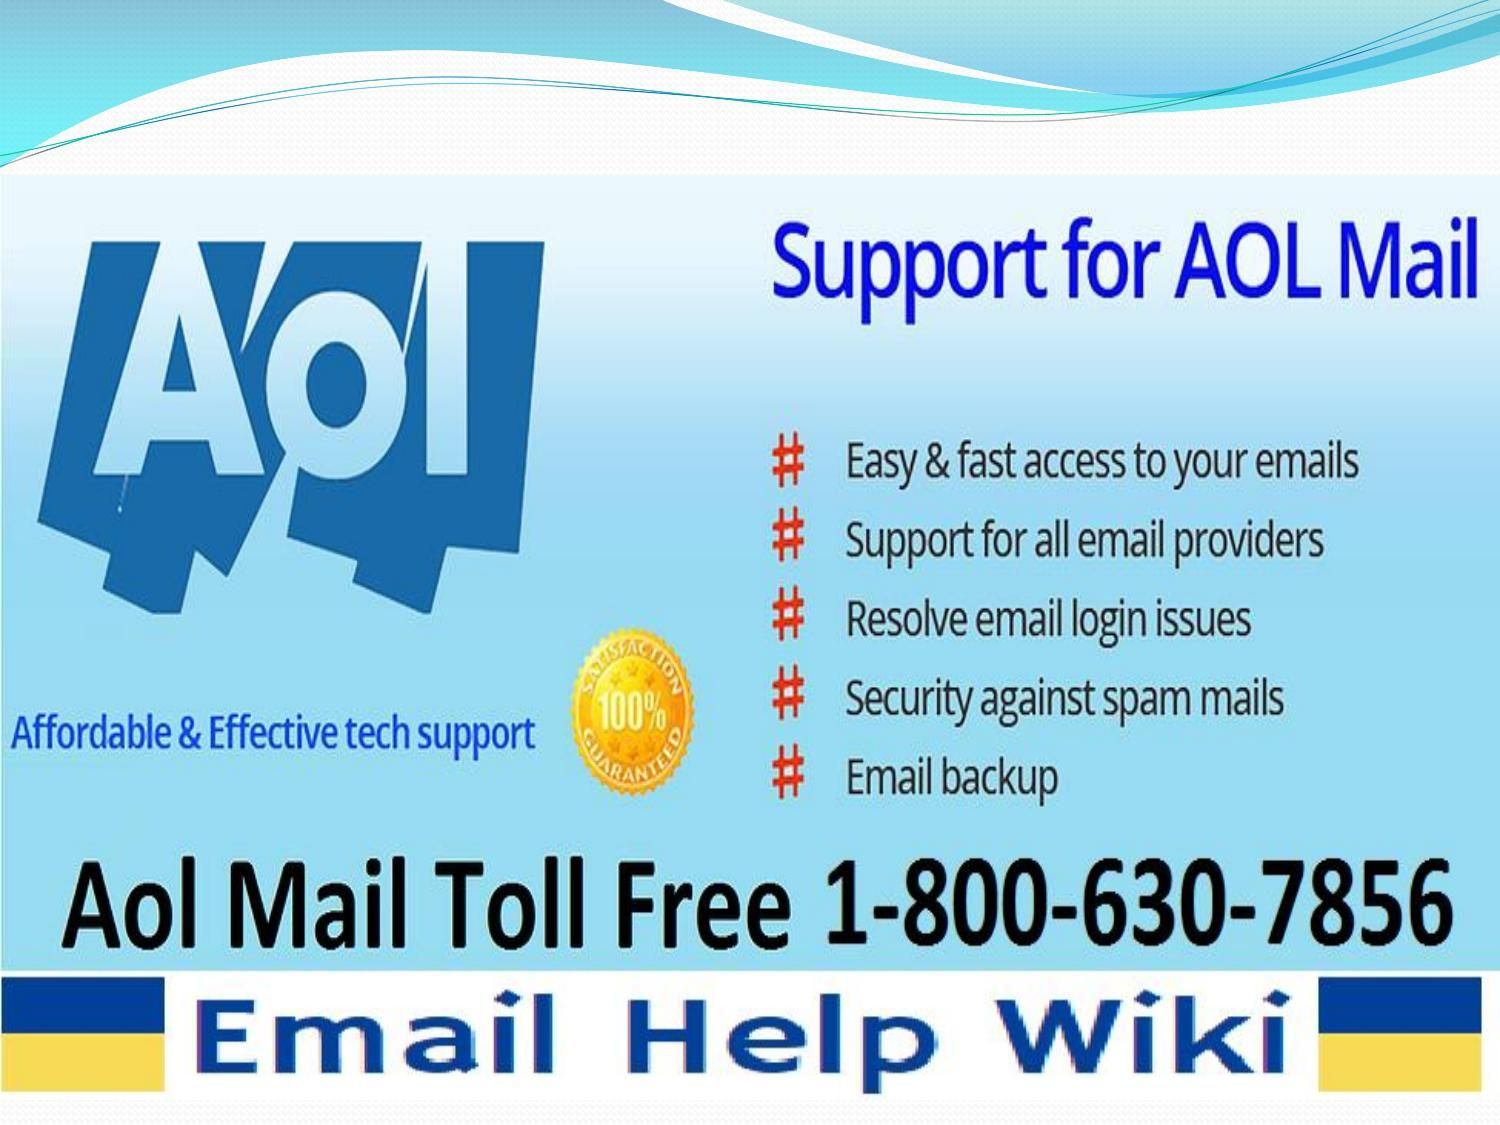 18006307856 aol mail services call 18006307856 aol mail and books 18006307856 aol mail services call 18006307856 sciox Gallery